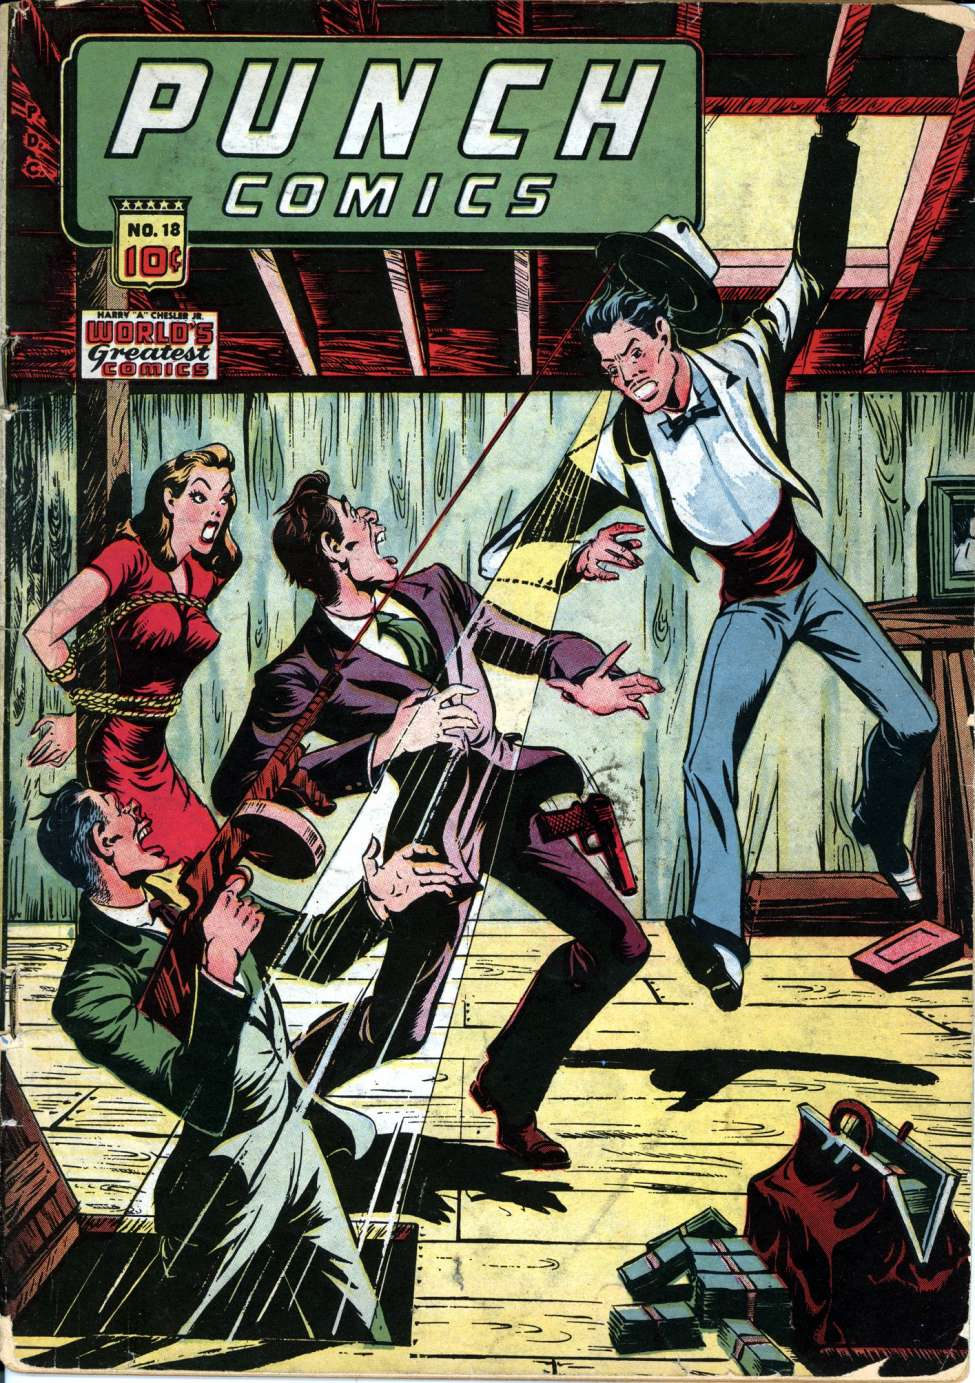 Punch Comics #18, Chesler